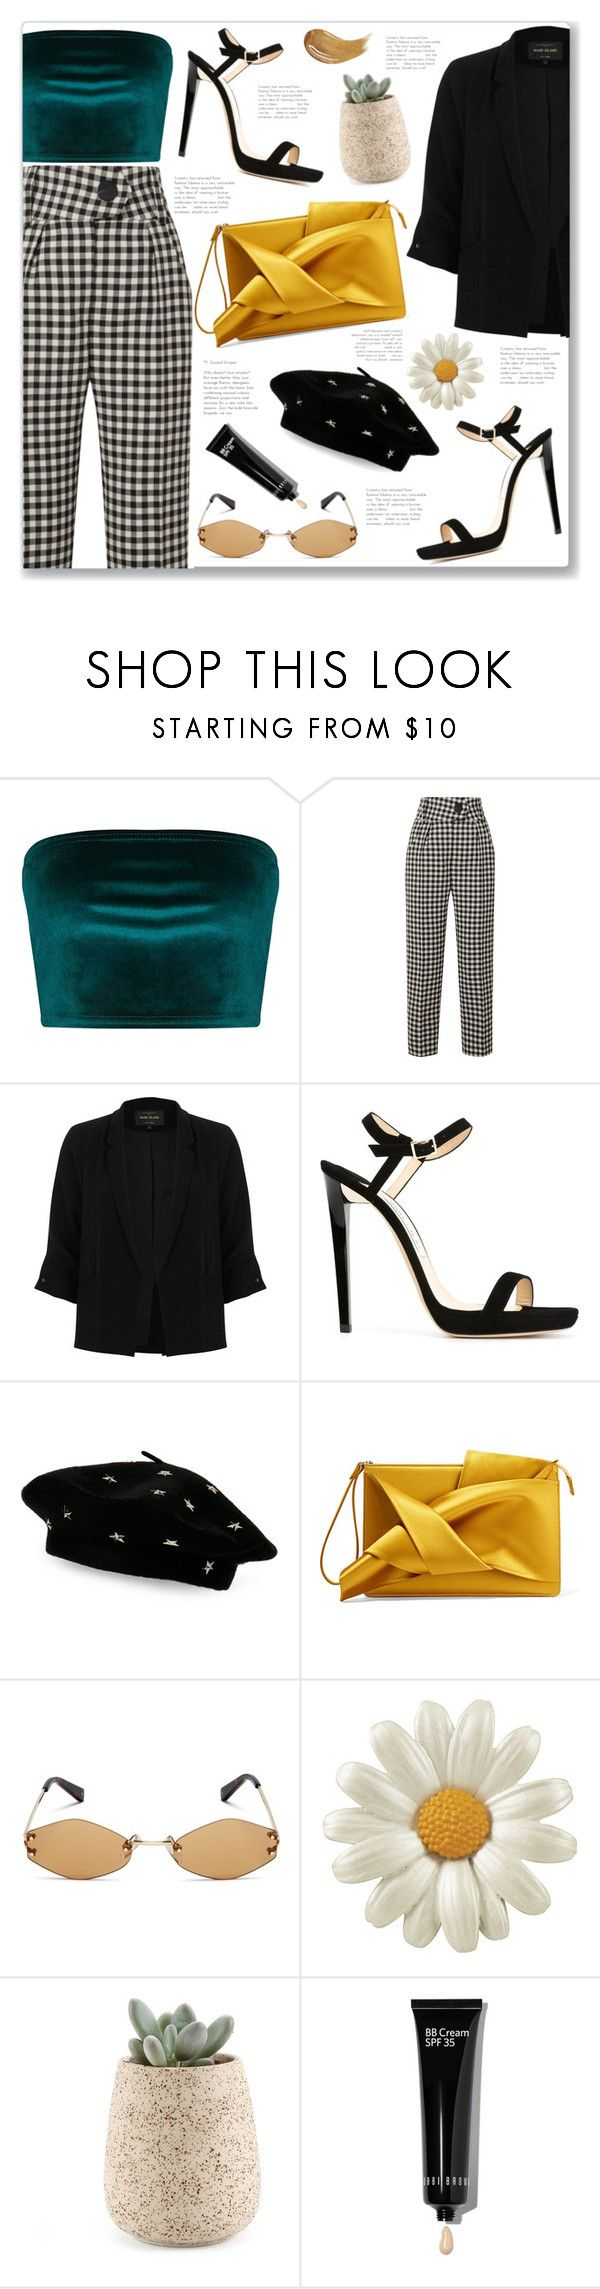 """Black Beret"" by creating-outfits ❤ liked on Polyvore featuring Petar Petrov, River Island, Jimmy Choo, Steve Madden, N°21, Kendall + Kylie, Bobbi Brown Cosmetics, Too Faced Cosmetics and vintage"